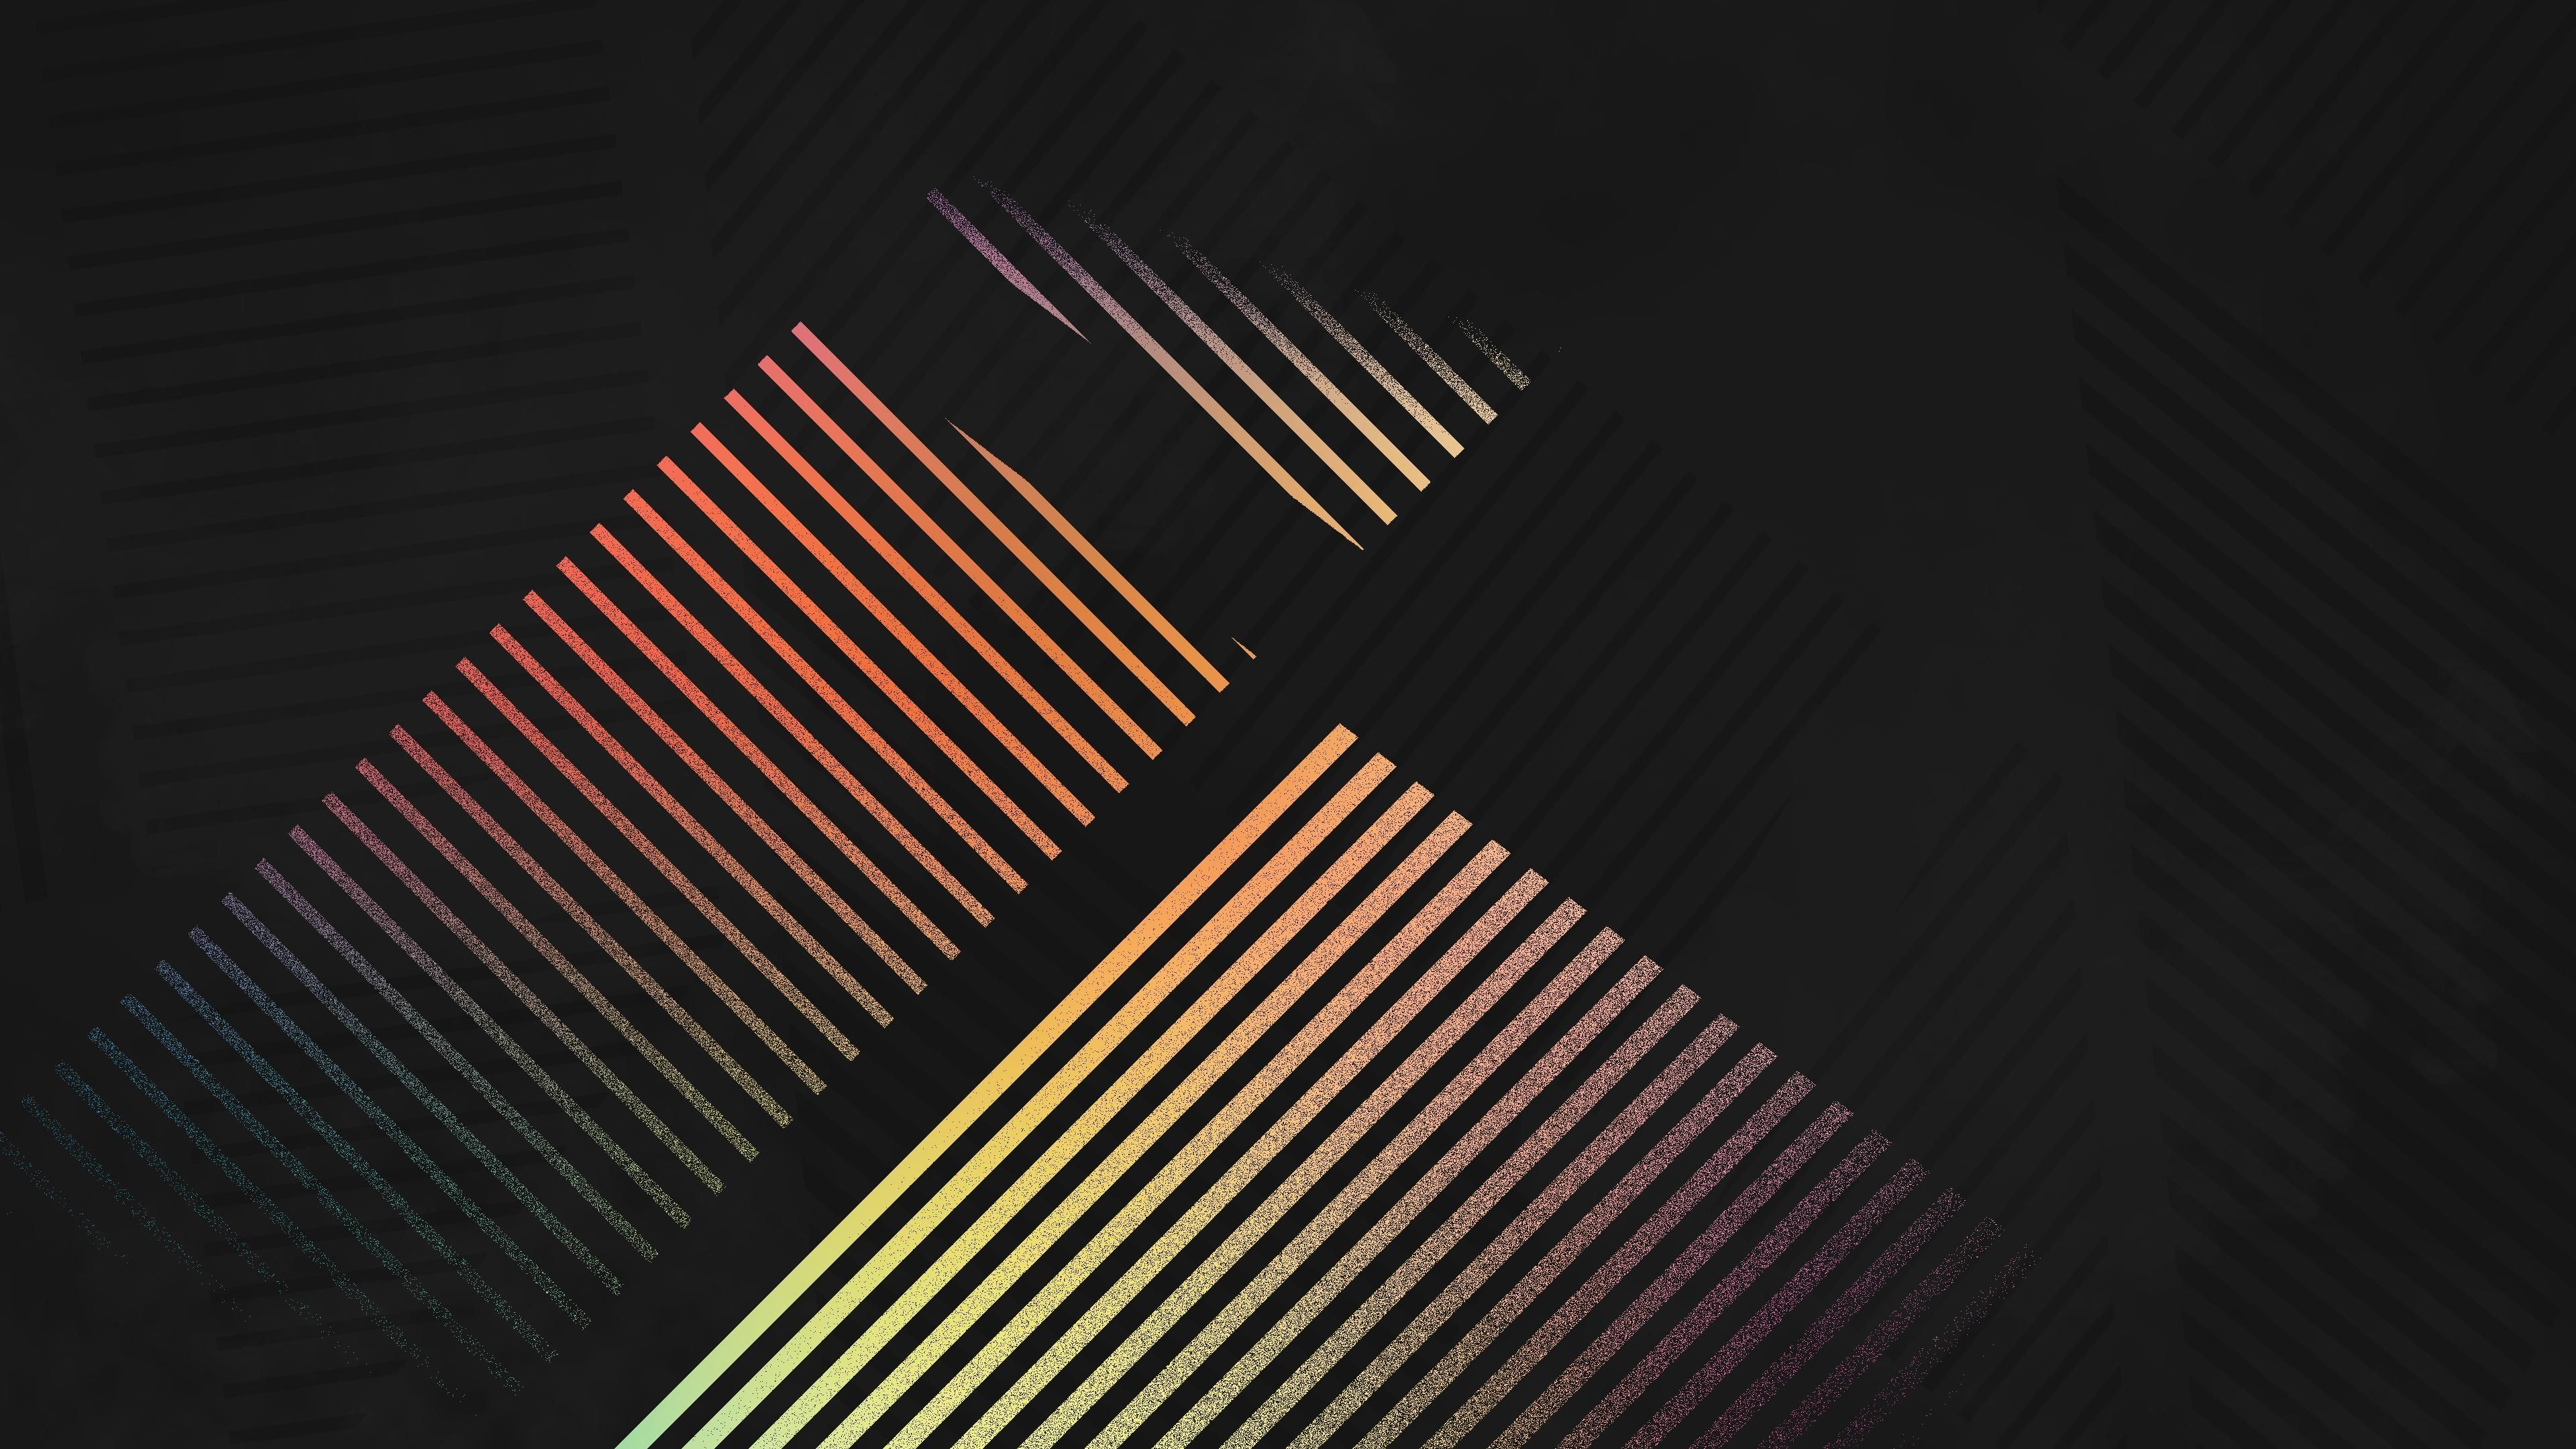 3840x2160 Abstract 4k High Resolution Image Graphics In